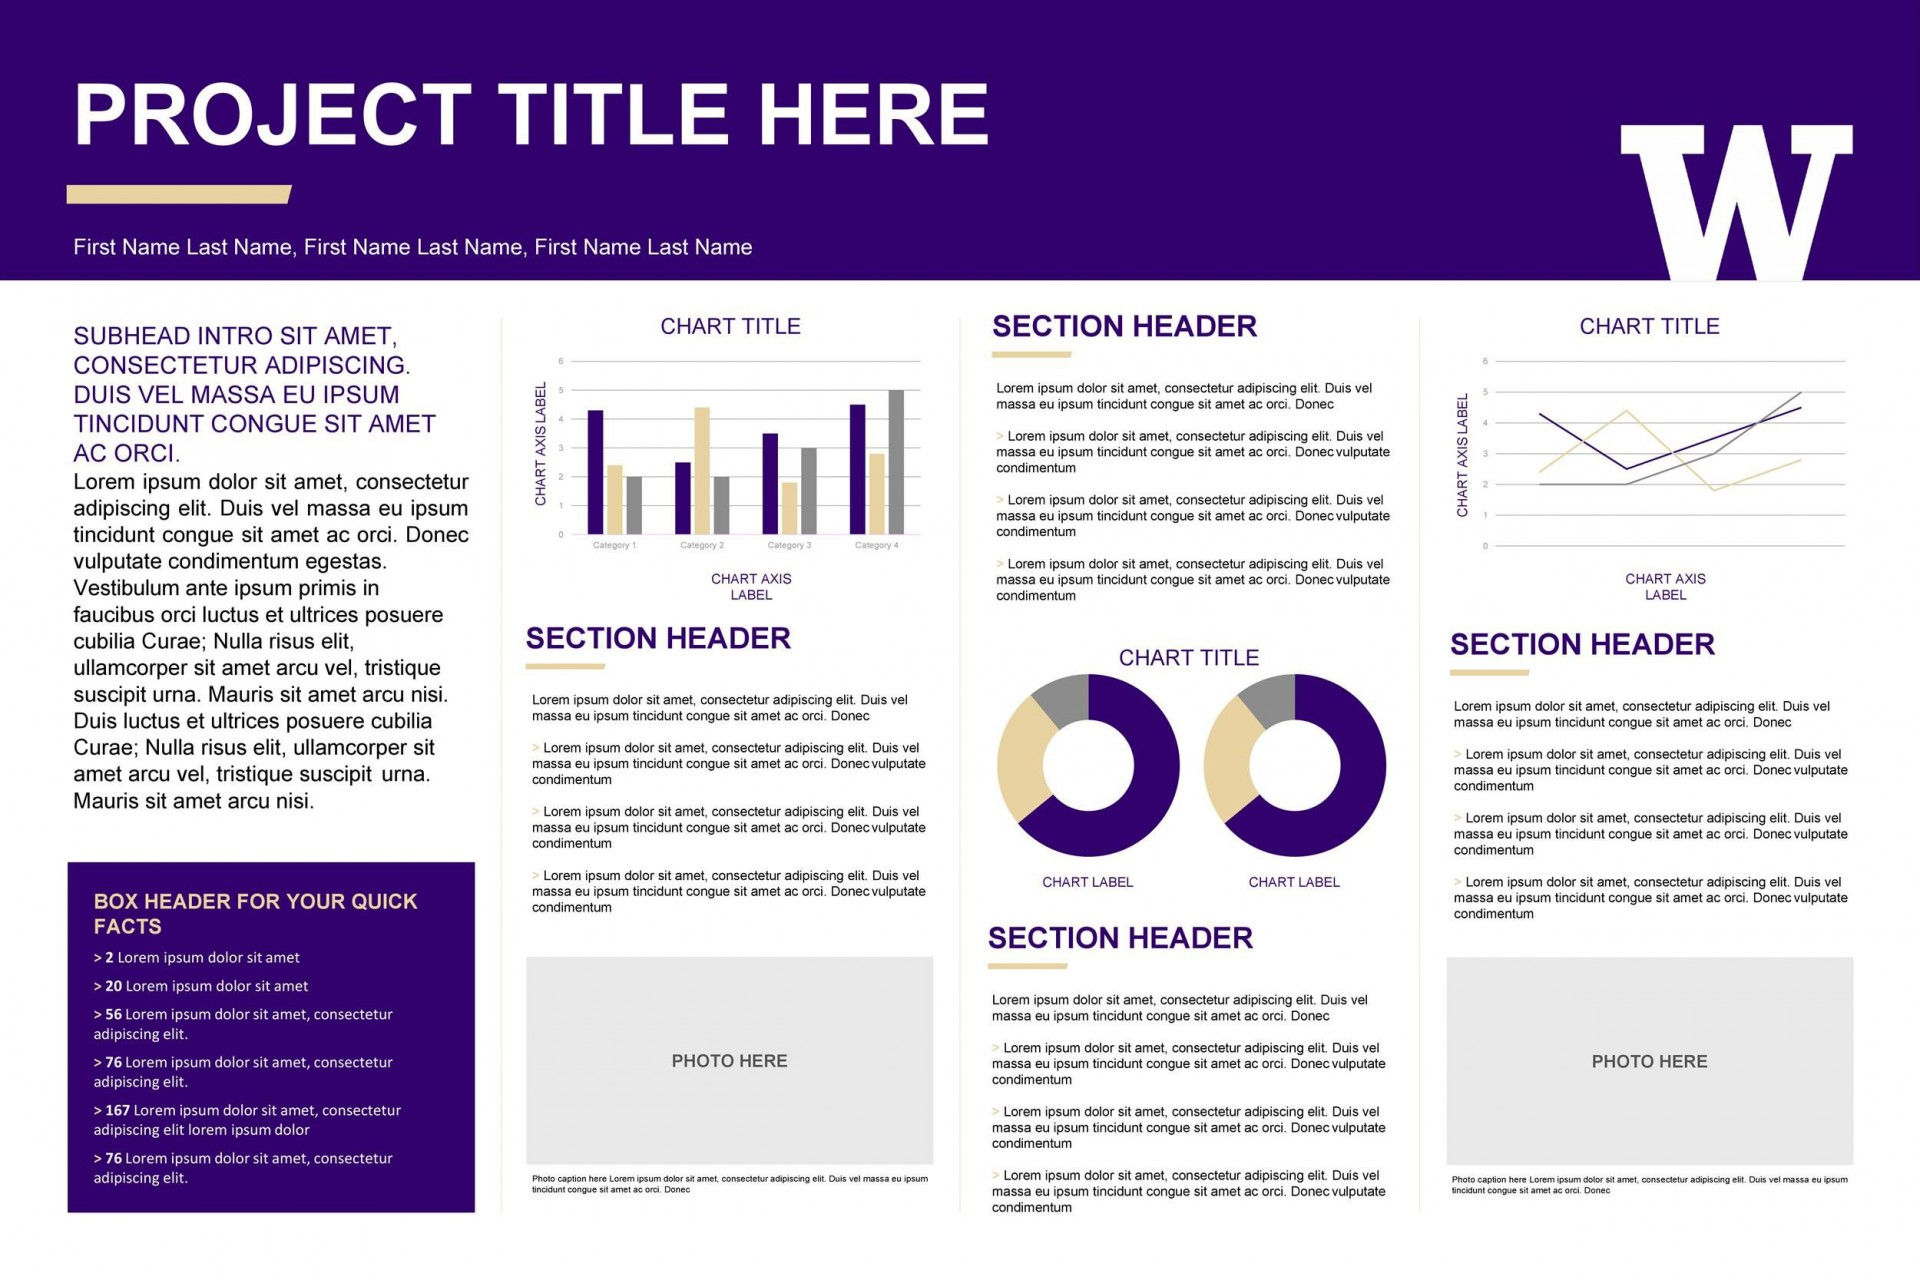 008 Stunning Scientific Poster Template Free Download Inspiration  A1 Creative1920